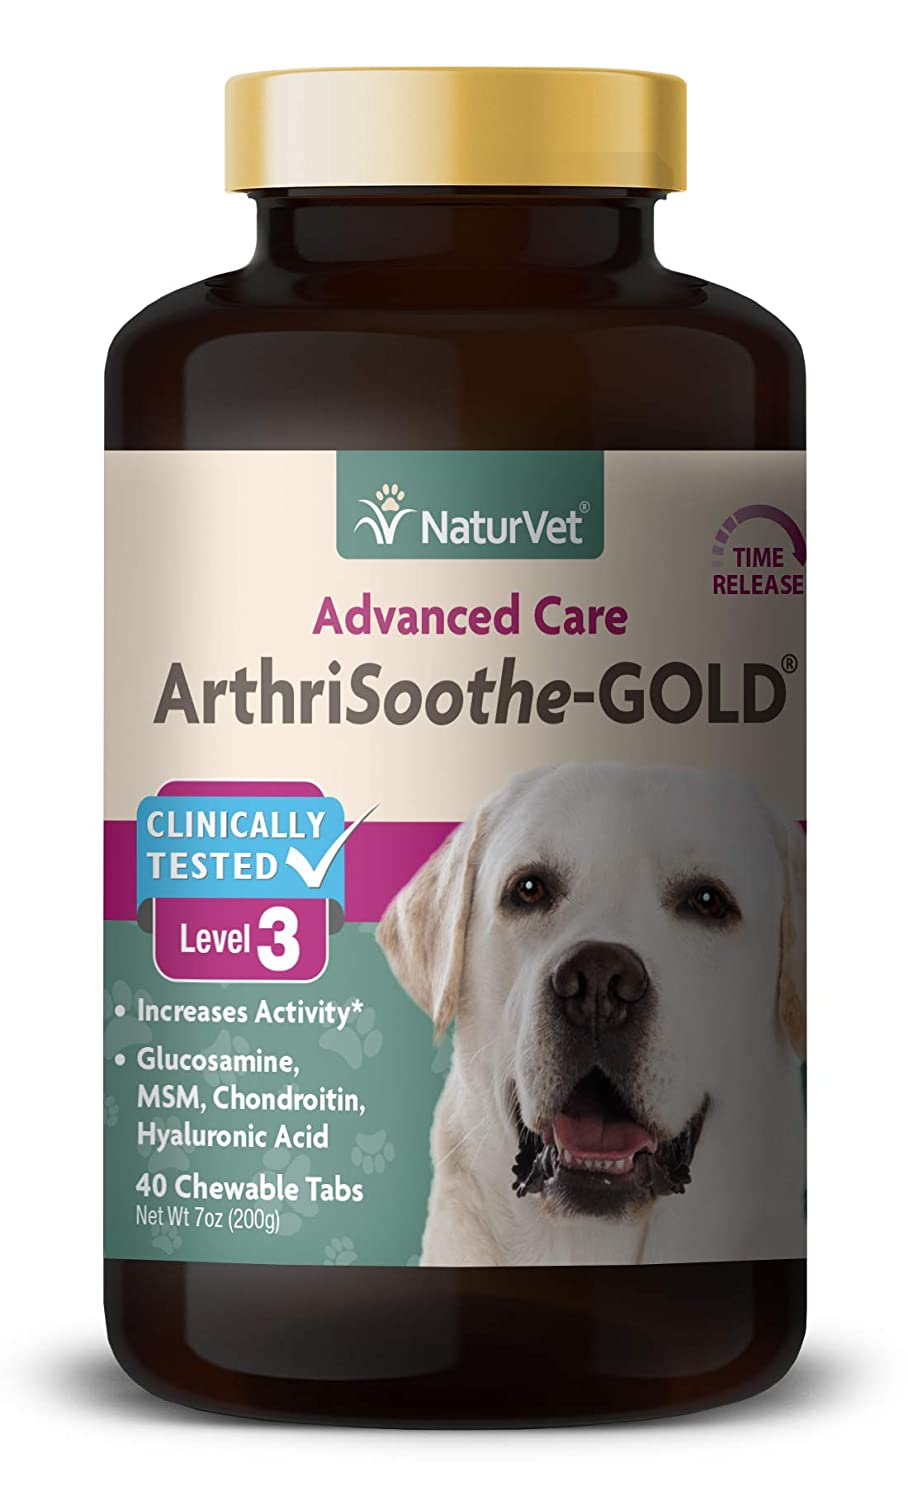 NaturVet Clinically Tested ArthriSoothe-gold Level 3 Advanced Joint Care for Dogs and Cats 40 ct Time Release ChewableTablets Made in USA